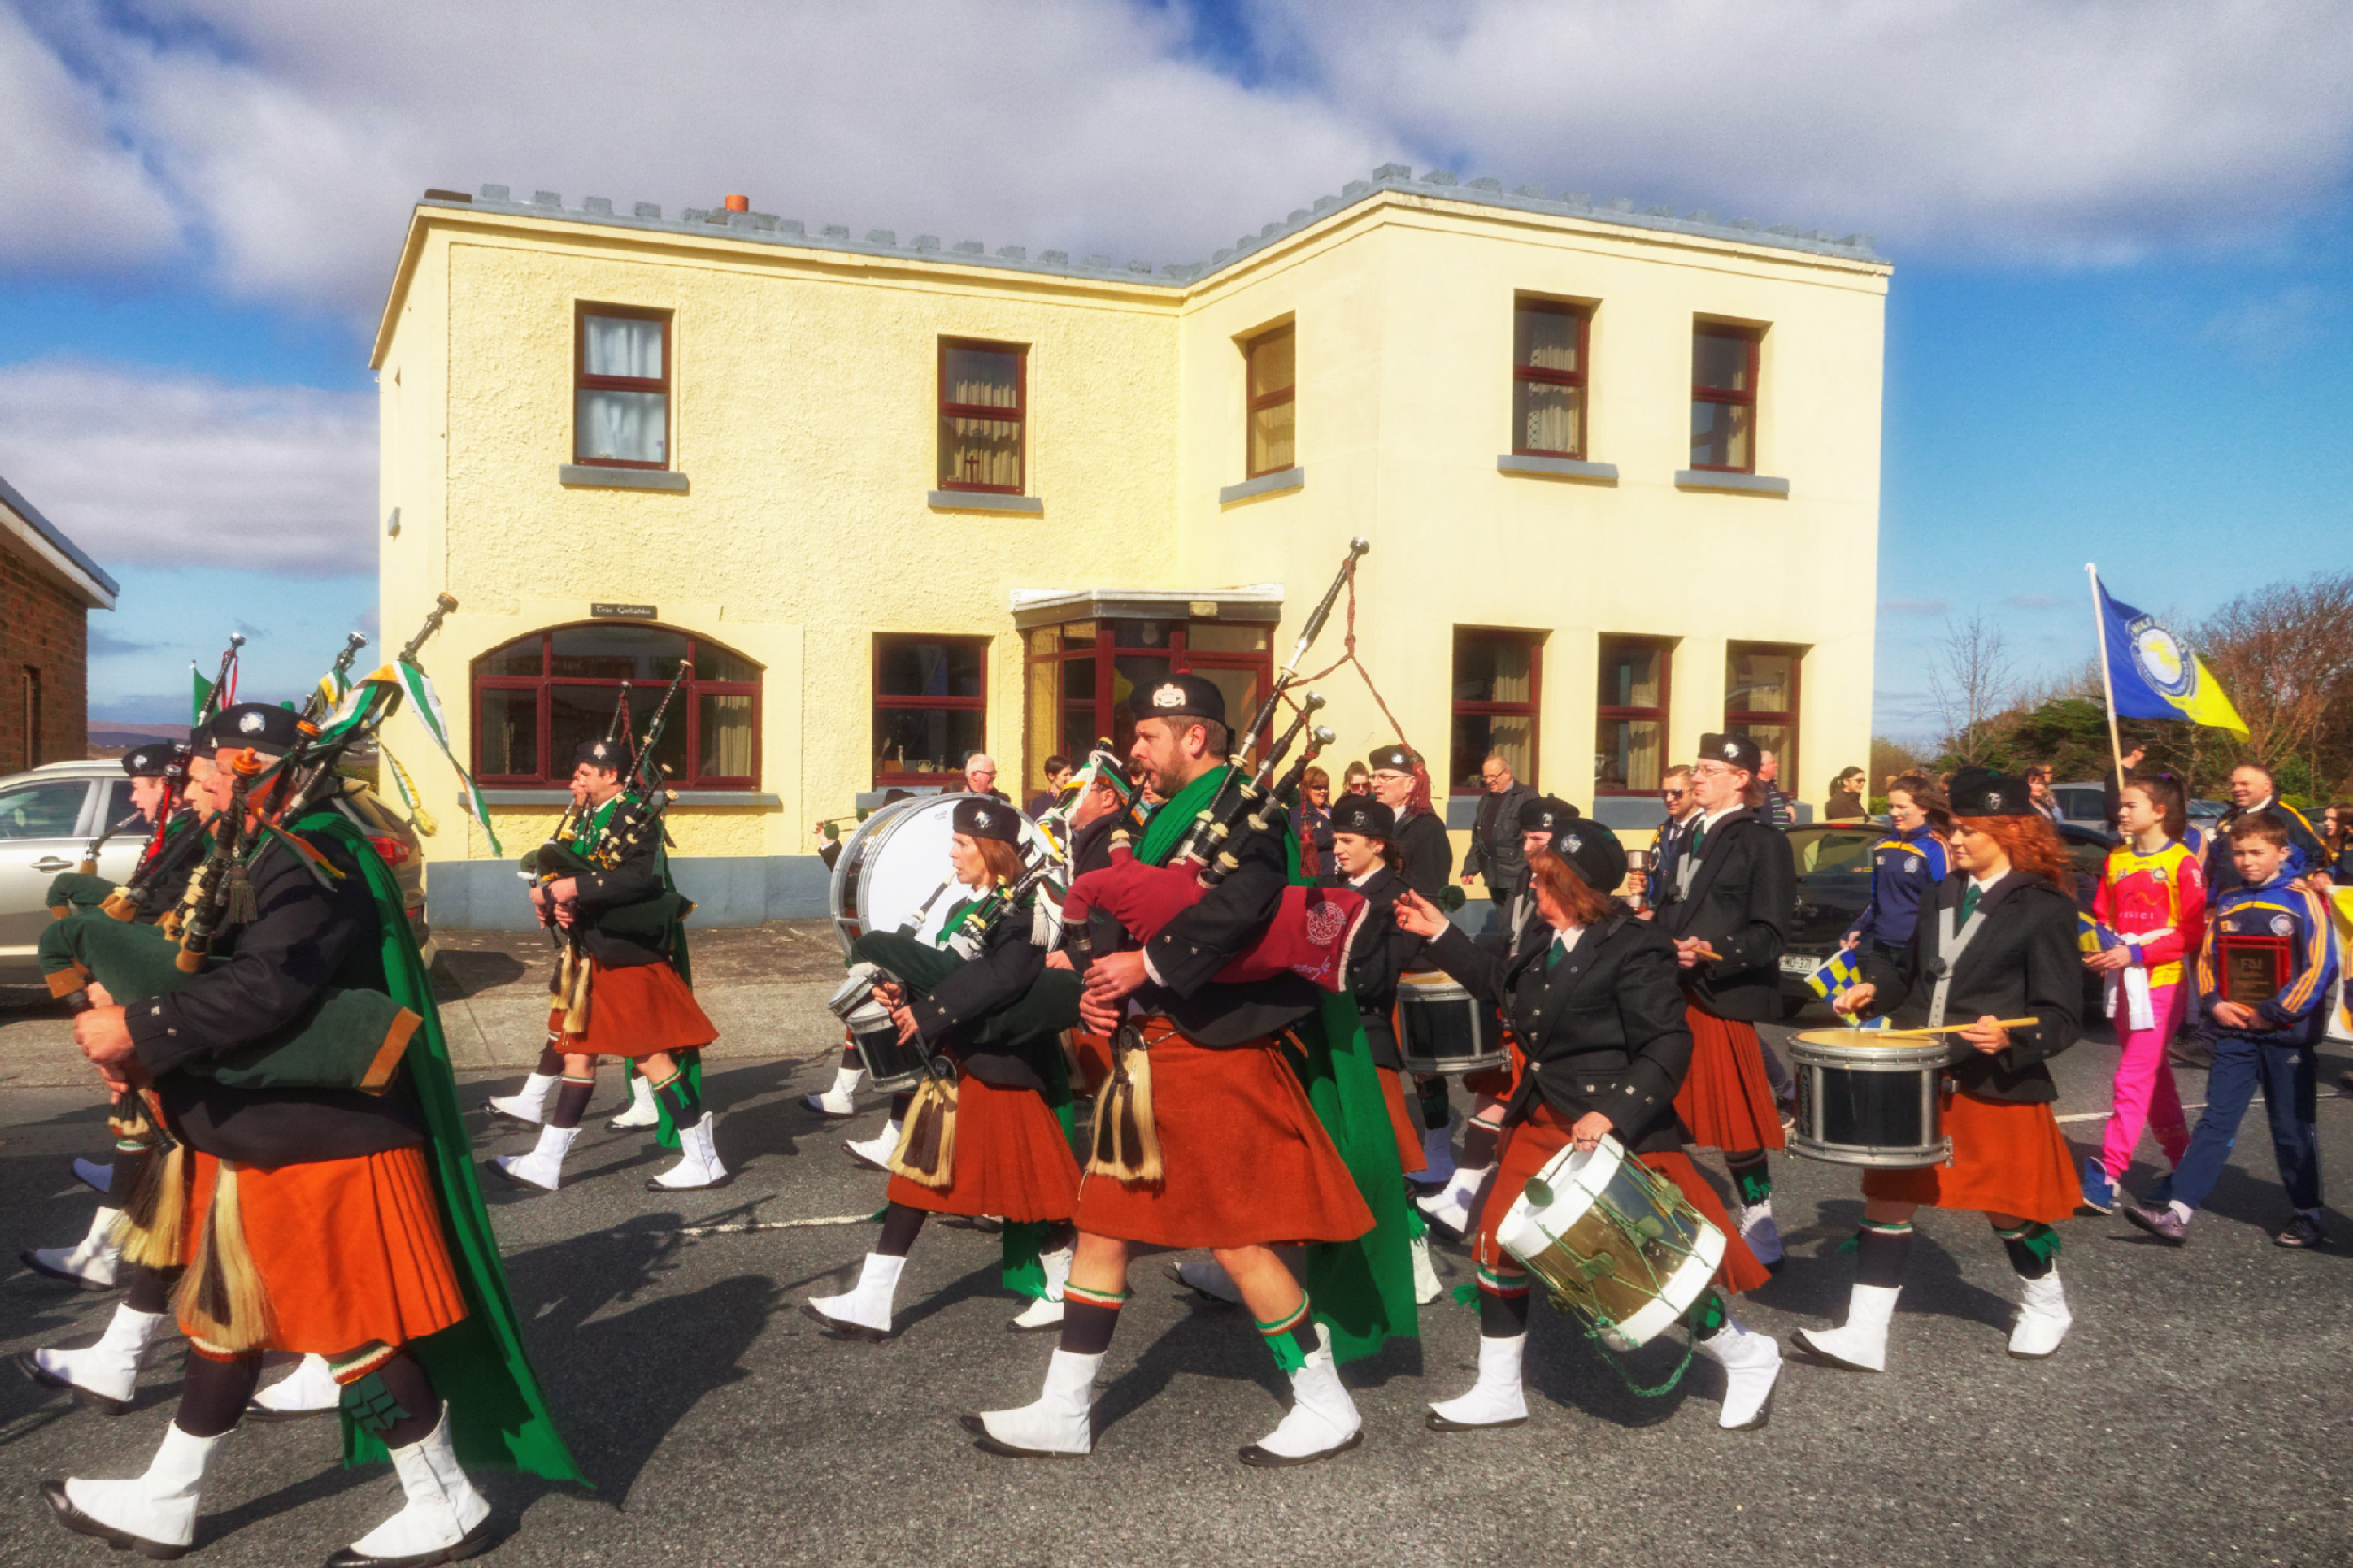 20160320130648-ie-achill-sound_parade-_DxO_13in_DxO96